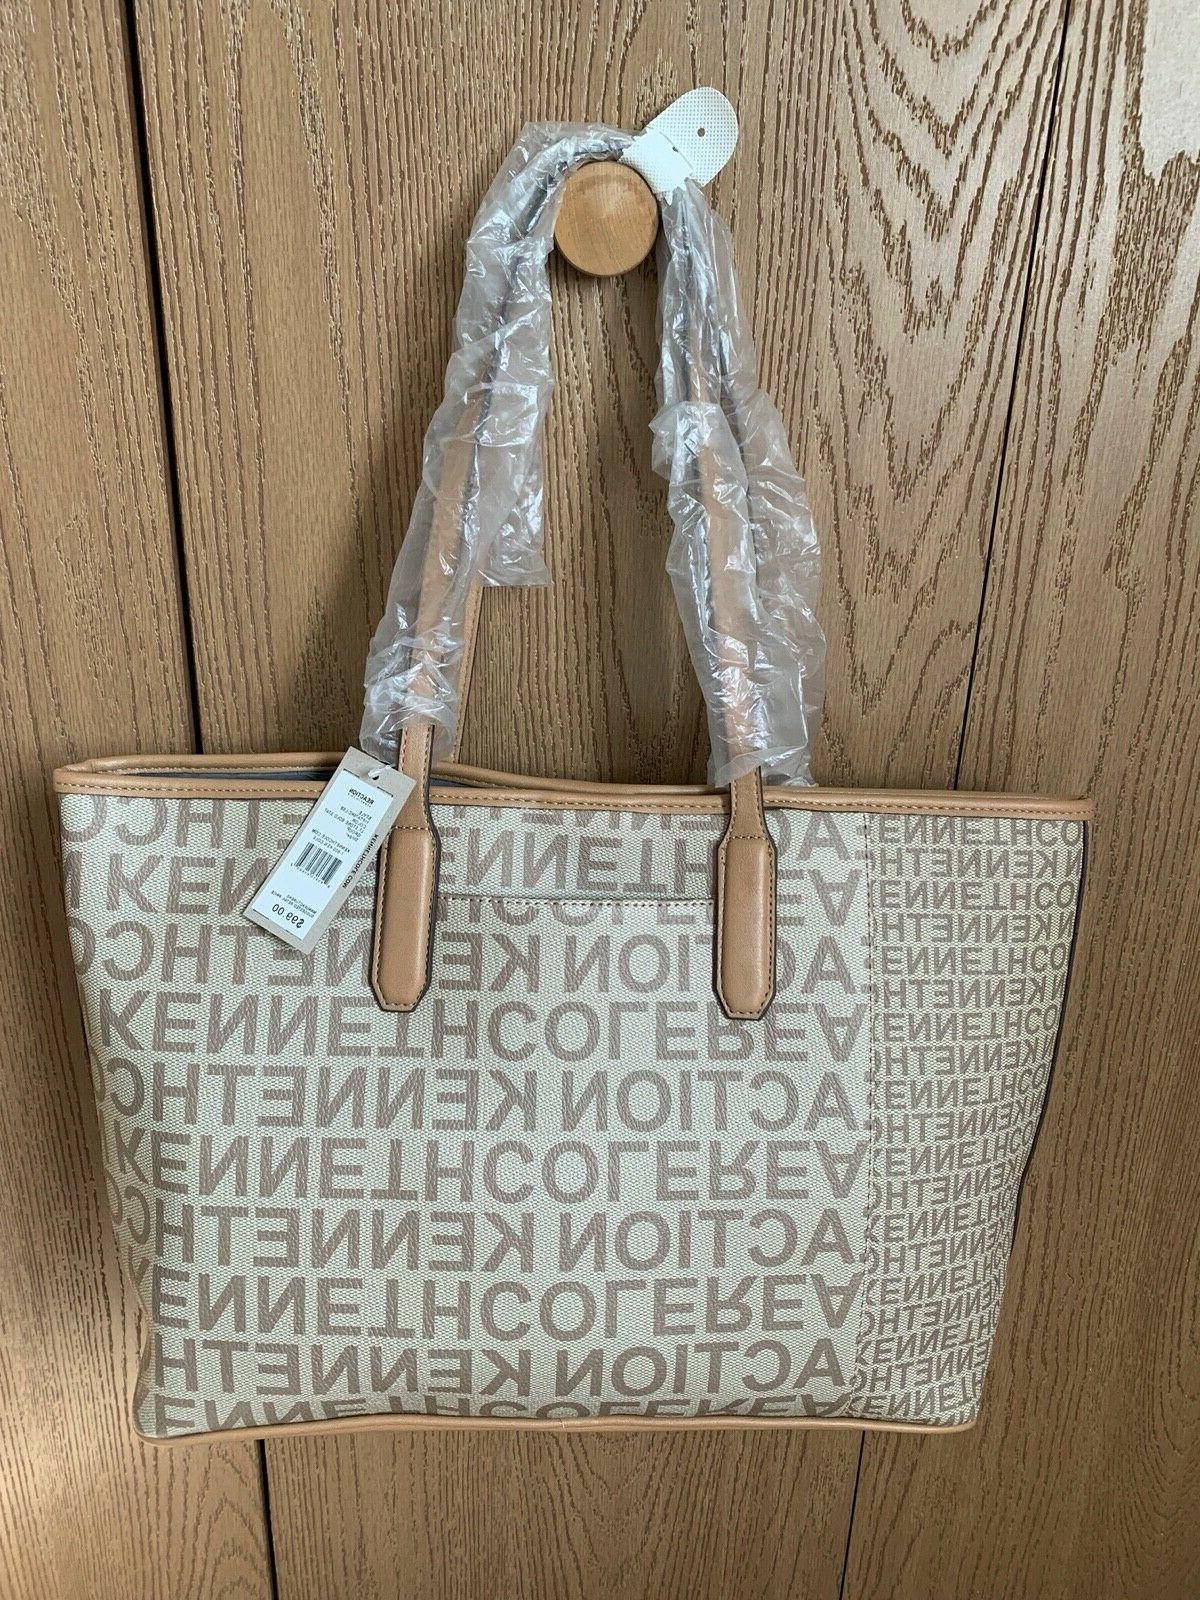 Kenneth Cole REACTION TAN TOTE